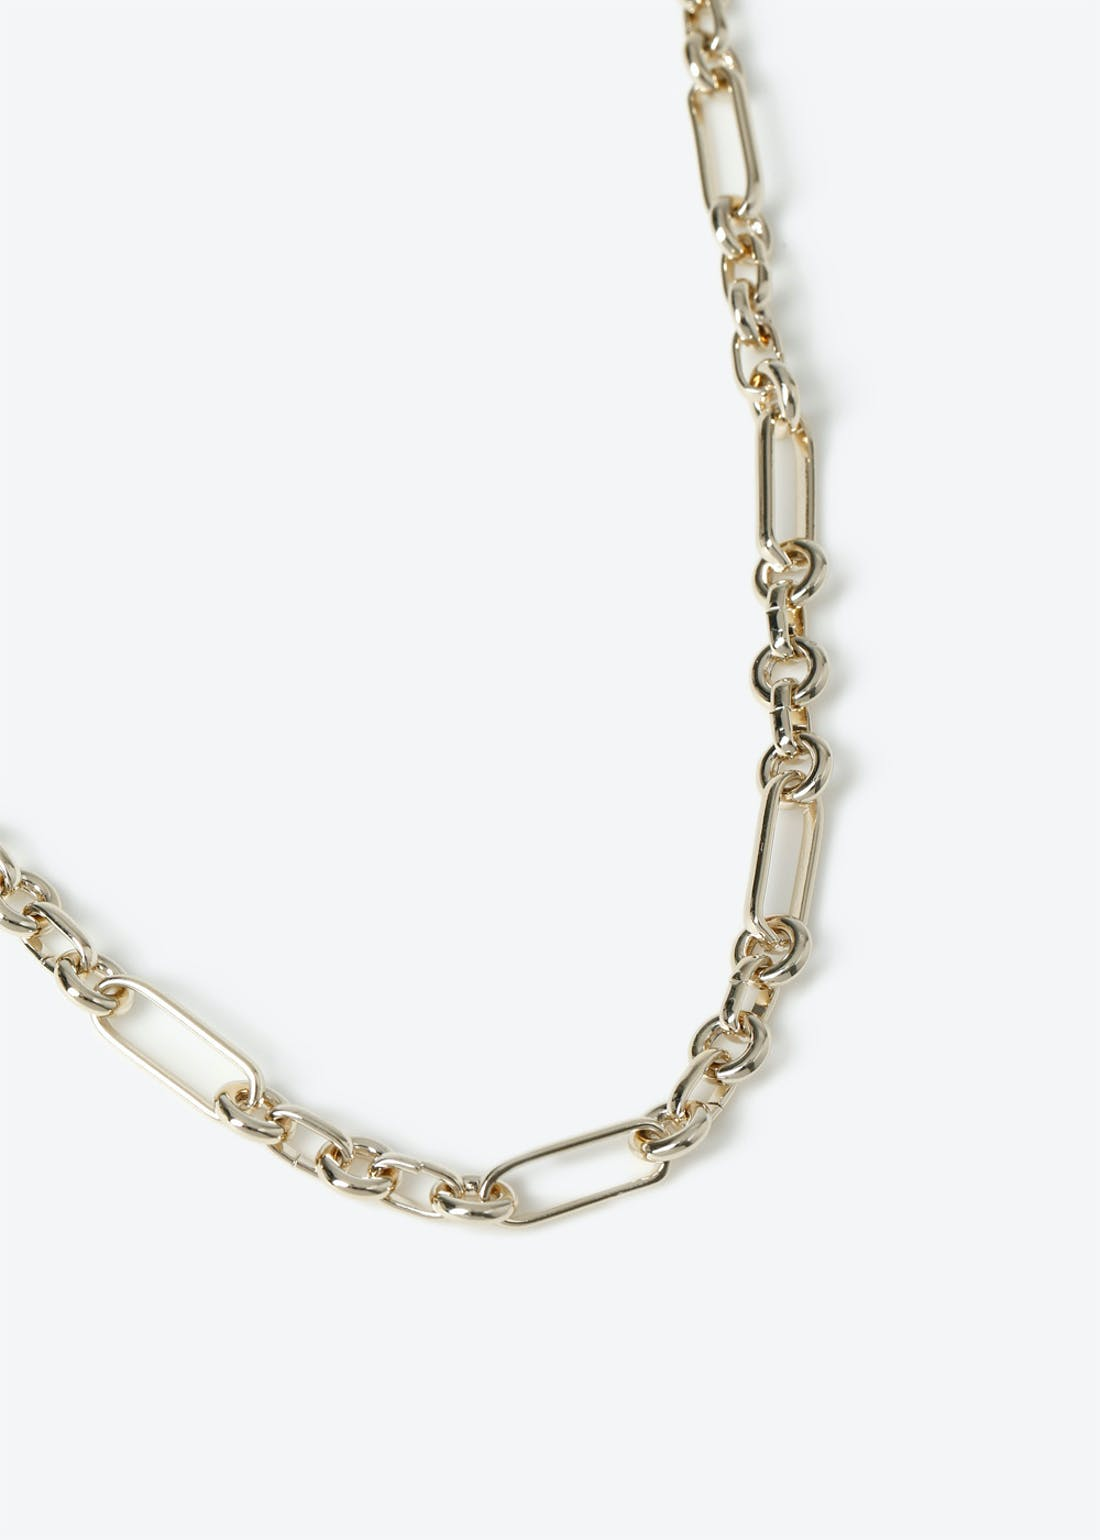 Gold Multi Link Chain